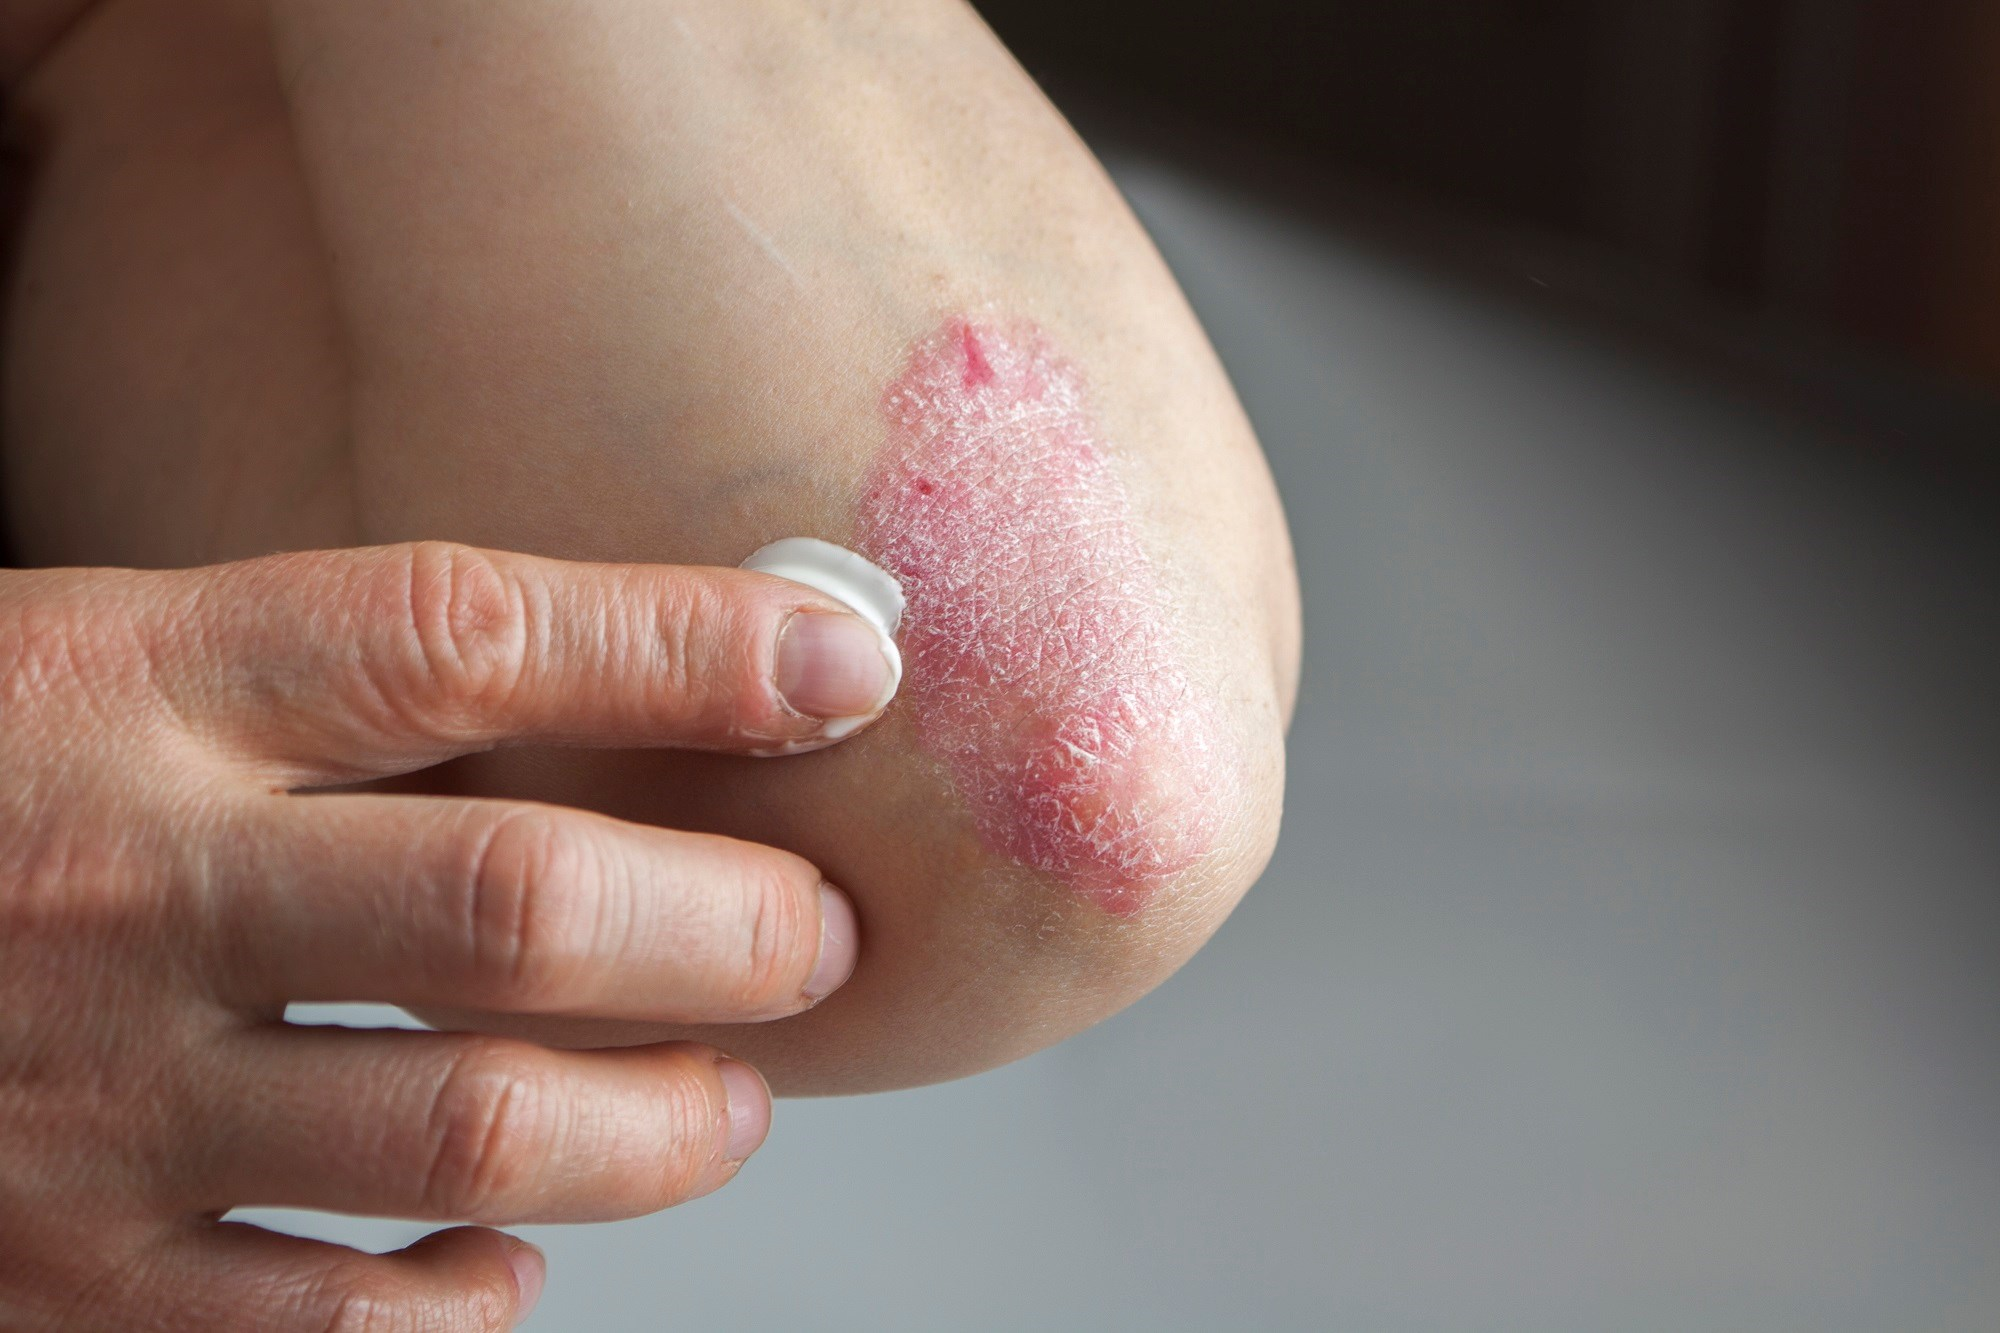 Novel Scoring System Can Up Access to Biologics in Psoriasis